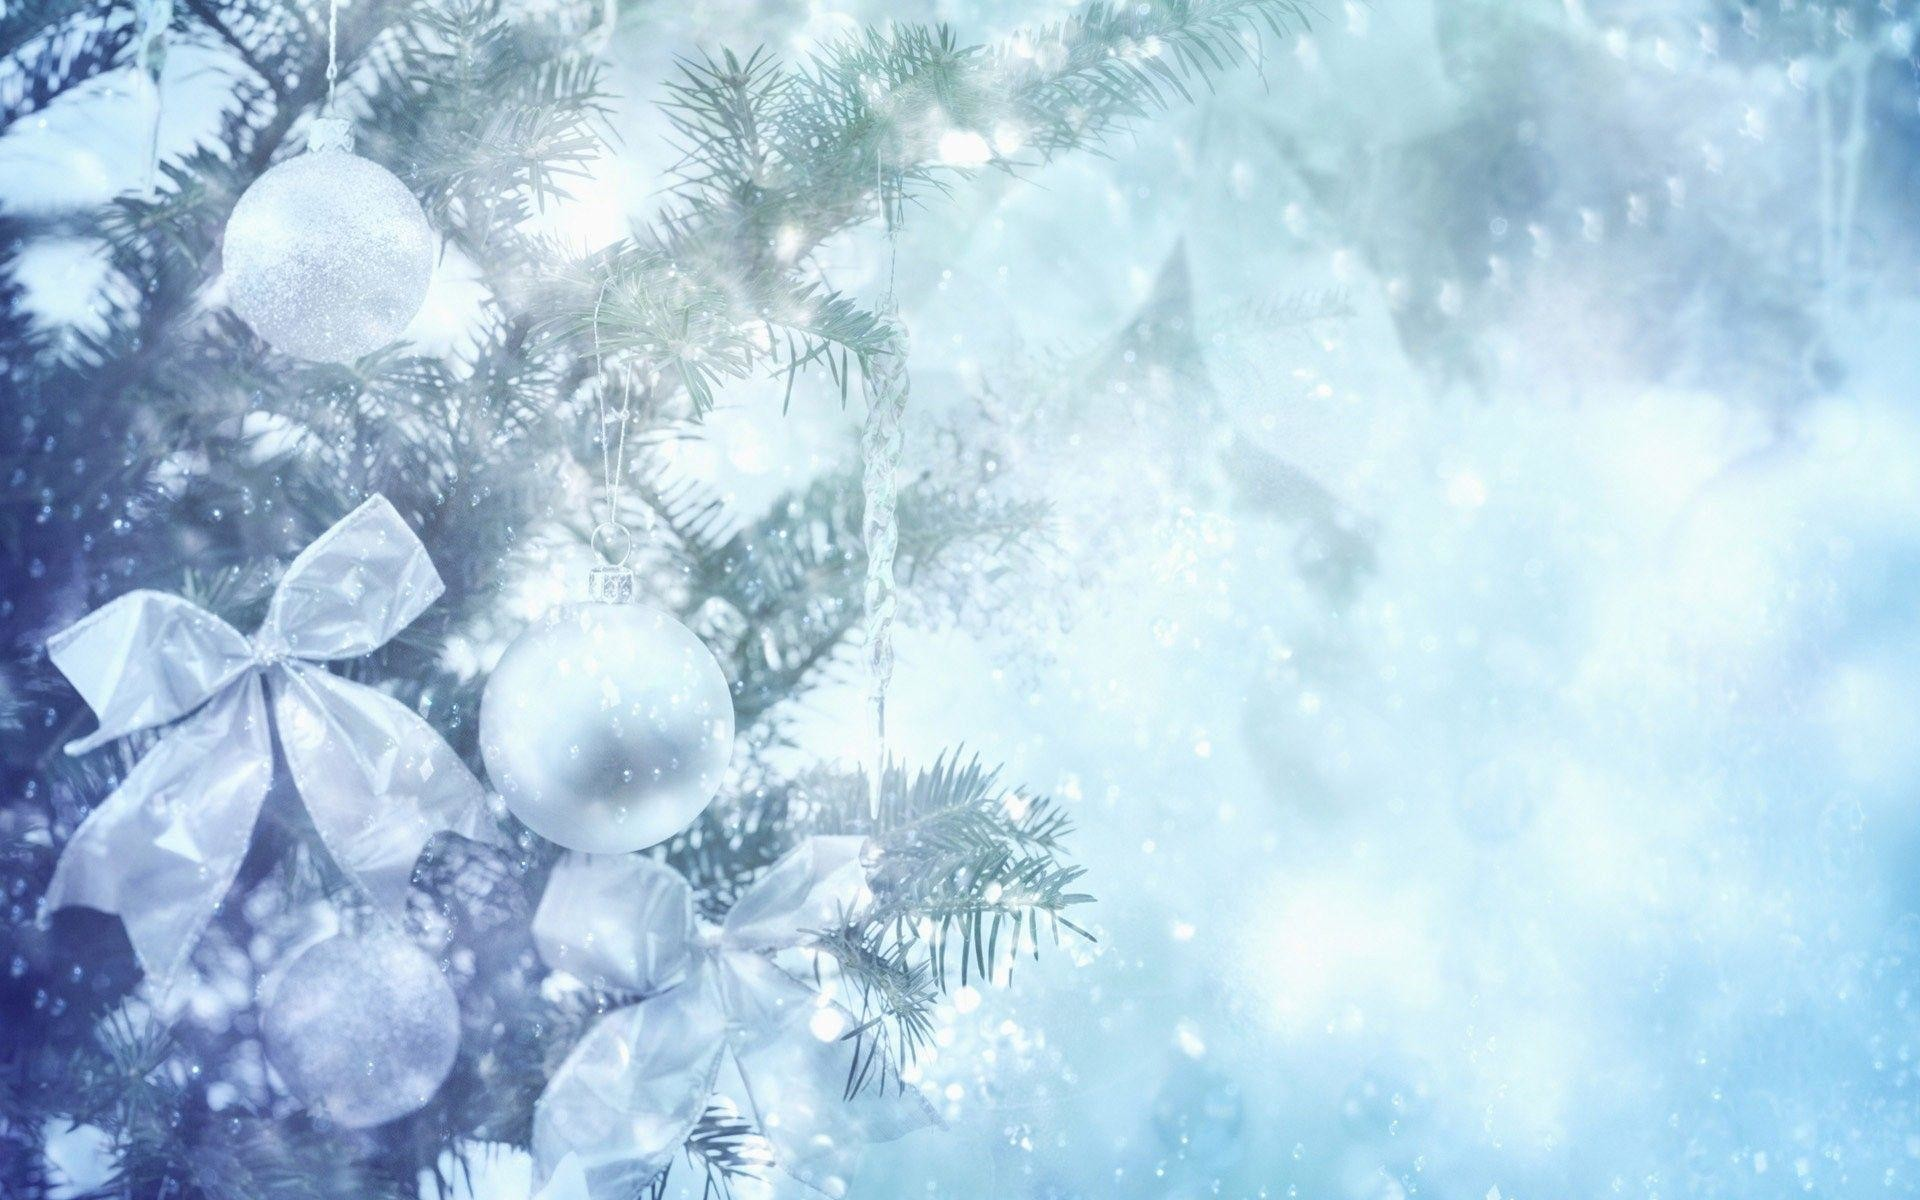 Res: 1920x1200, Winter Holiday Christmas Wallpaper